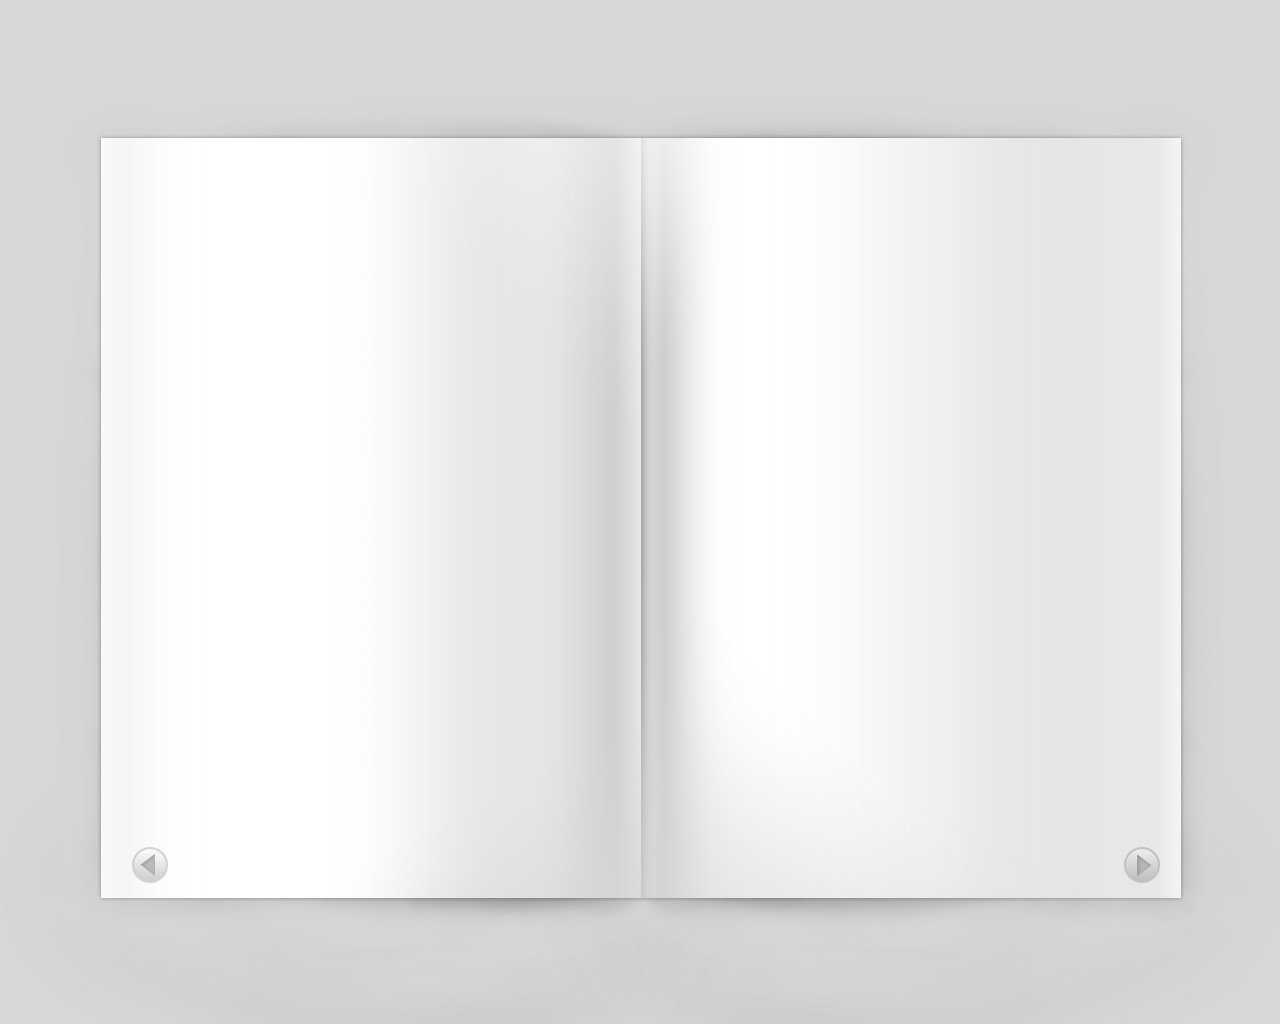 14 Magazine Template Psd File Images - Blank Magazine Page Pertaining To Blank Magazine Template Psd